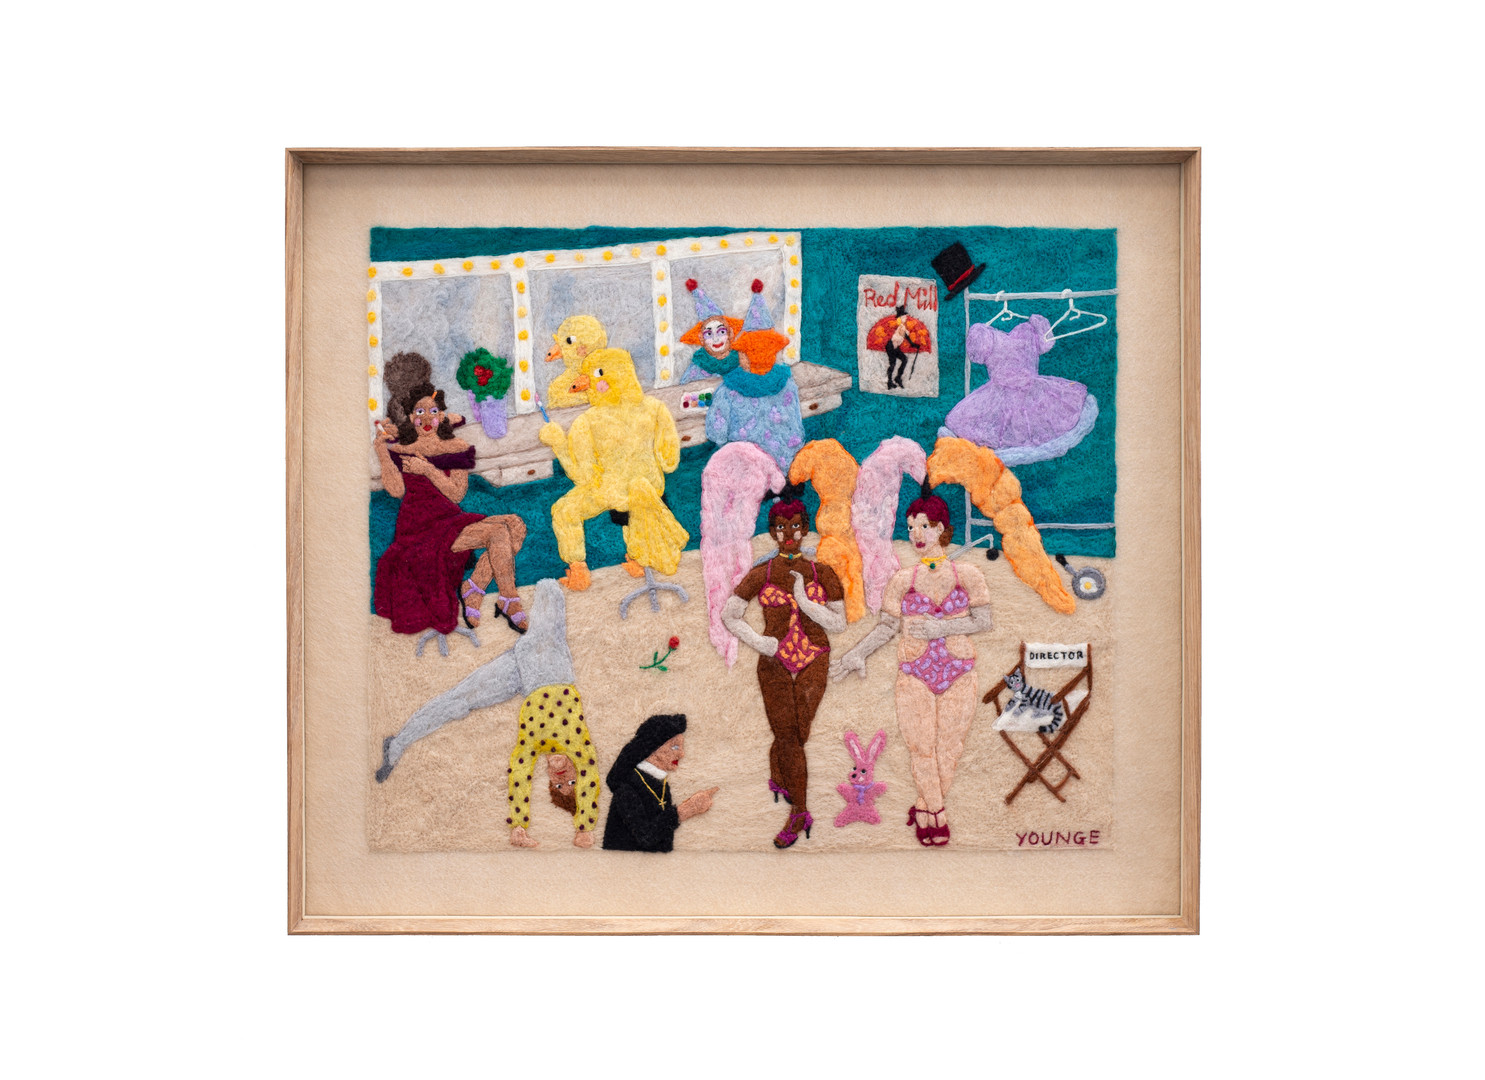 Michaela Younge   The director condemned happy people by creating miserable plays   2020   Merino Wool on Felt   54.5 x 63.5 cm